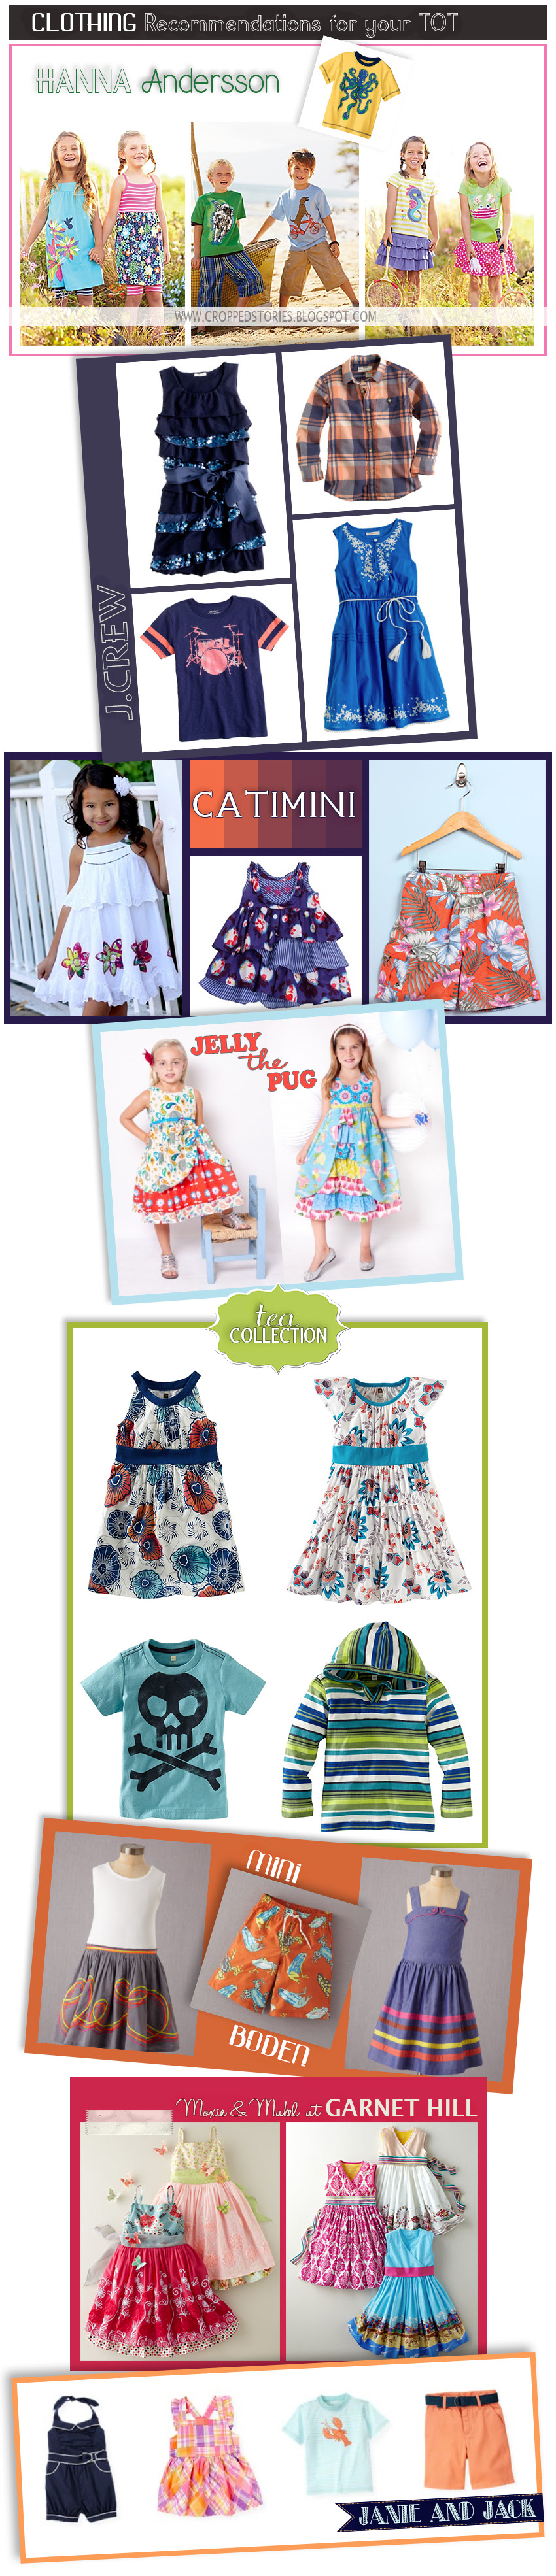 TODDLER CLOTHING RECOMMENDATIONS